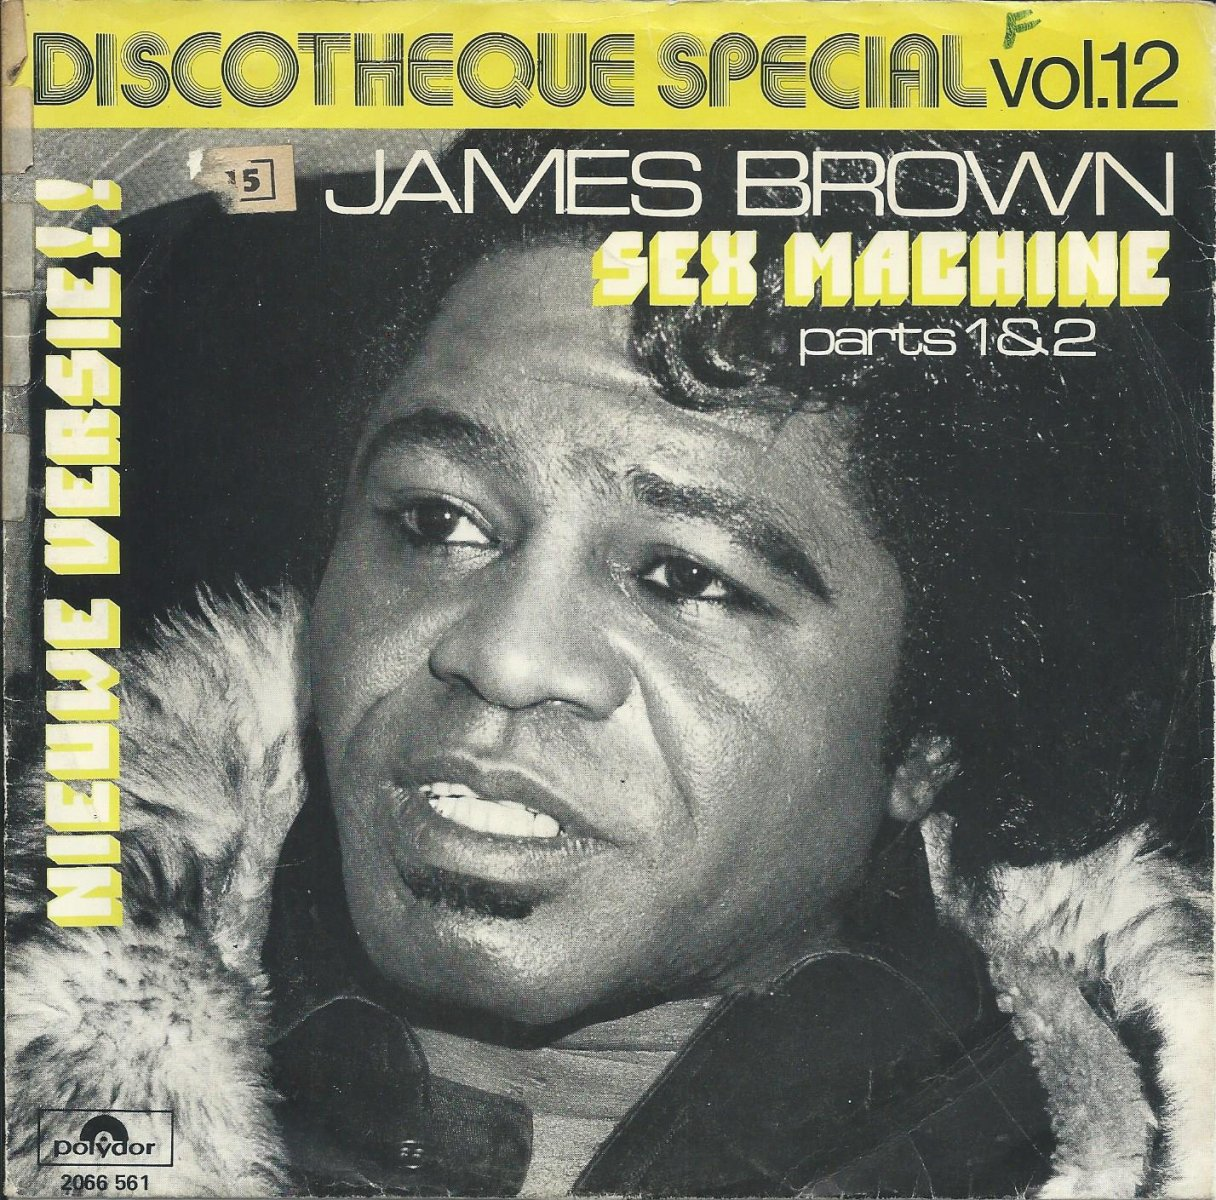 JAMES BROWN / SEX MACHINE PARTS 1 & 2 (7